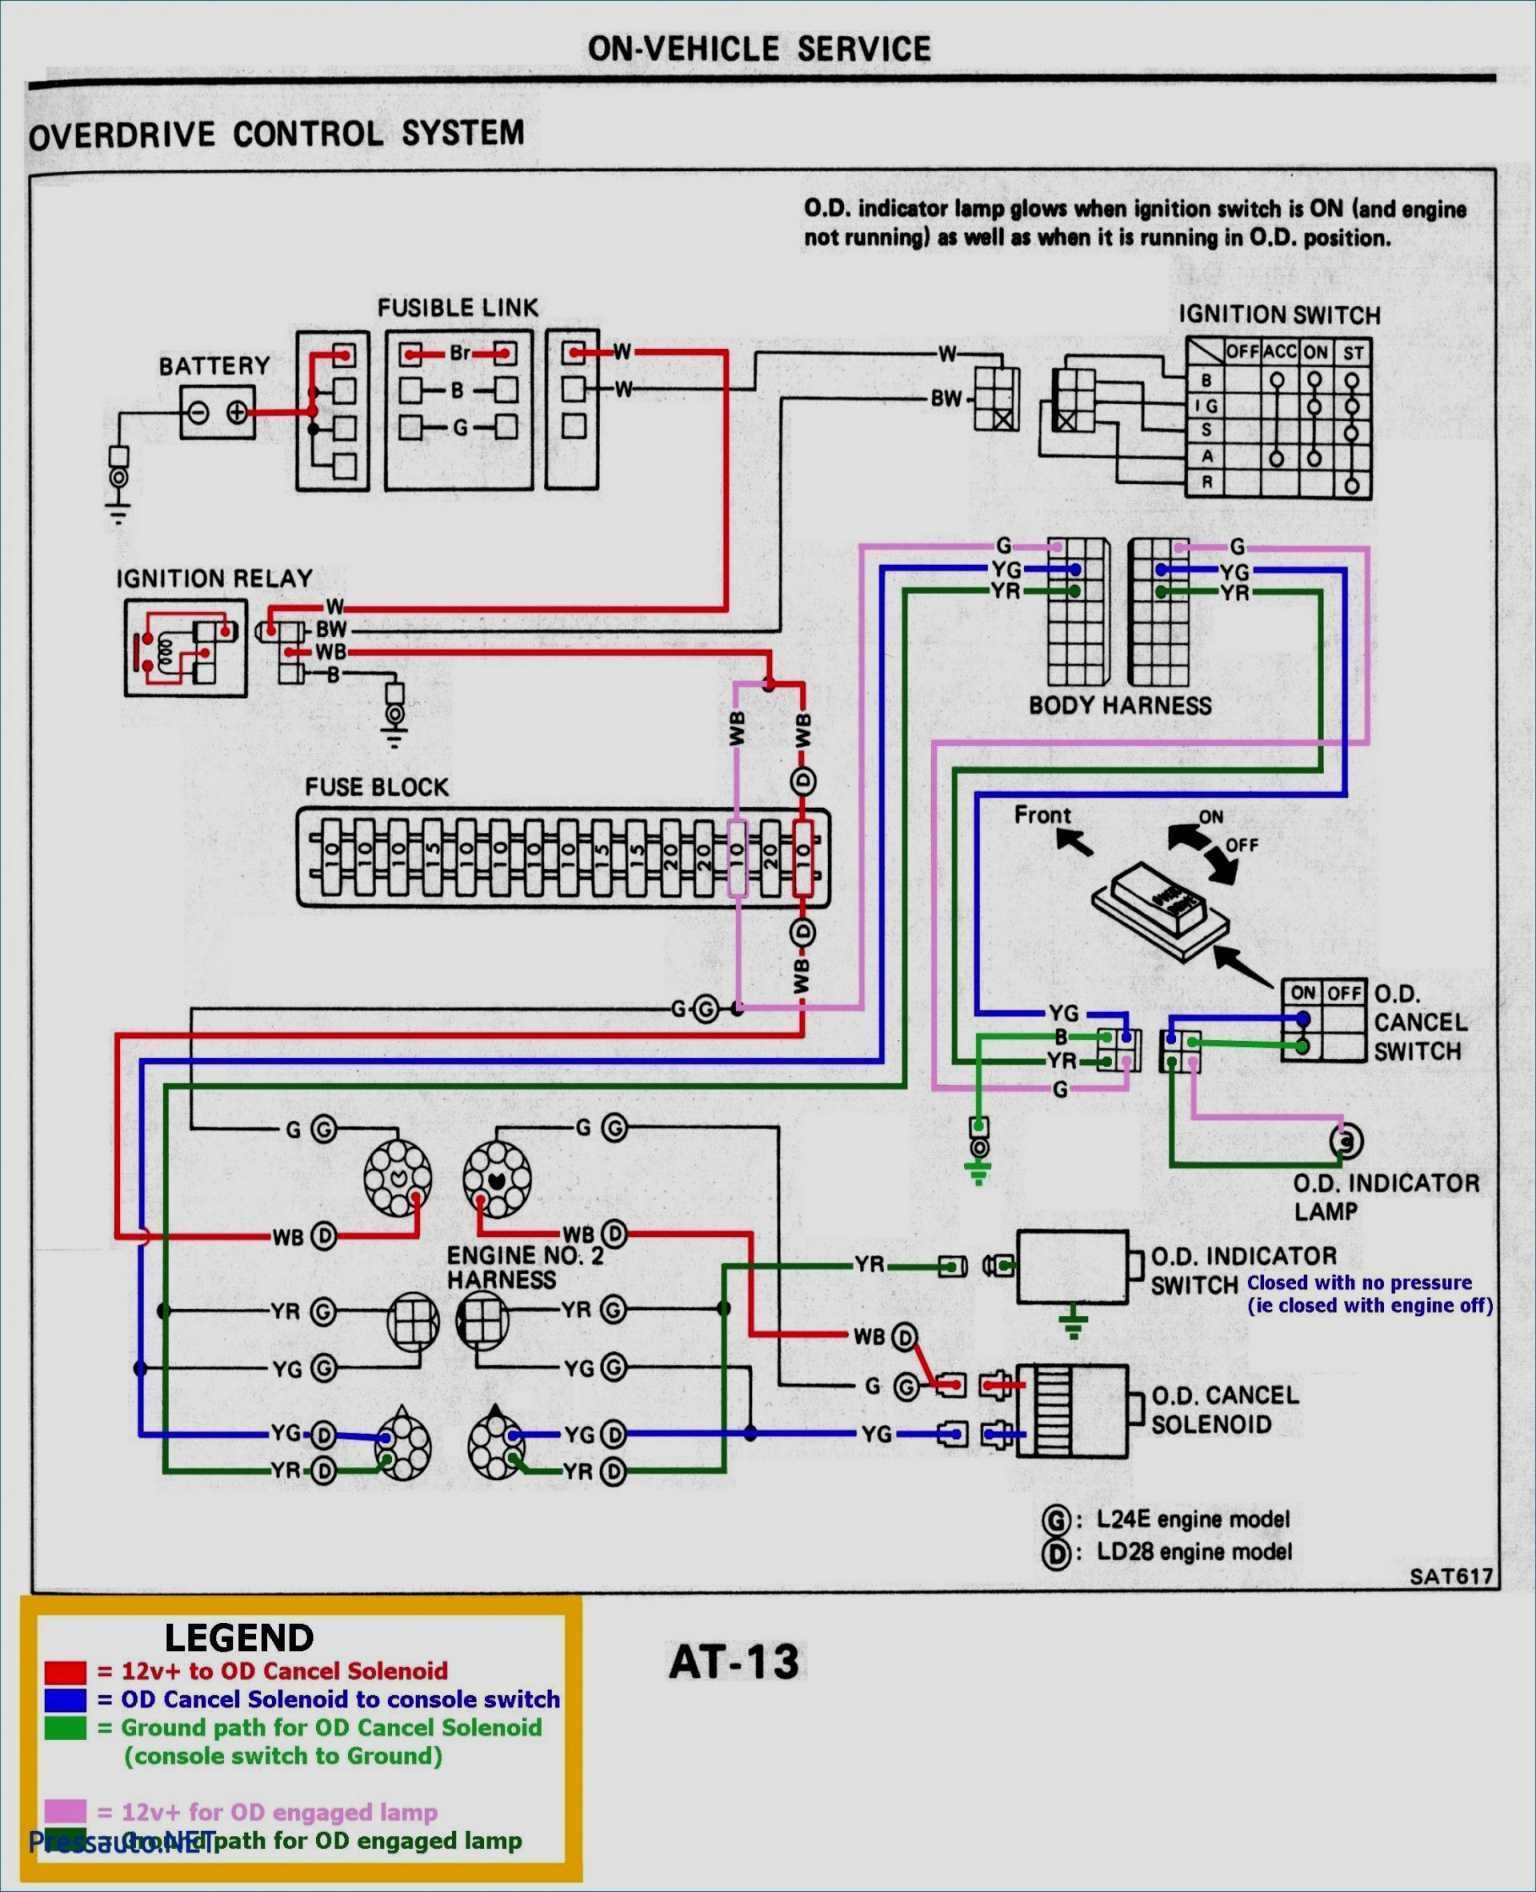 Kohler Generator Wiring Diagram | My Wiring DIagram on kohler kt17qs diagram, kohler command wiring diagrams, kohler generator special tools, kohler engine electrical diagram, lifan generators wiring diagram, kohler engine wiring diagrams, kohler generator schematics, remote spotlight wiring diagram, kohler engine parts diagram, kohler generators start stop, kohler generator fuel tank, decision maker 3 wiring diagram, case 446 tractor wiring diagram, kohler k321 engine diagram s, kohler charging system diagram, kohler key switch wiring diagram, kohler wiring diagram manual, 240v single phase motor wiring diagram, kohler generator parts diagram, case tractor starter wiring diagram,